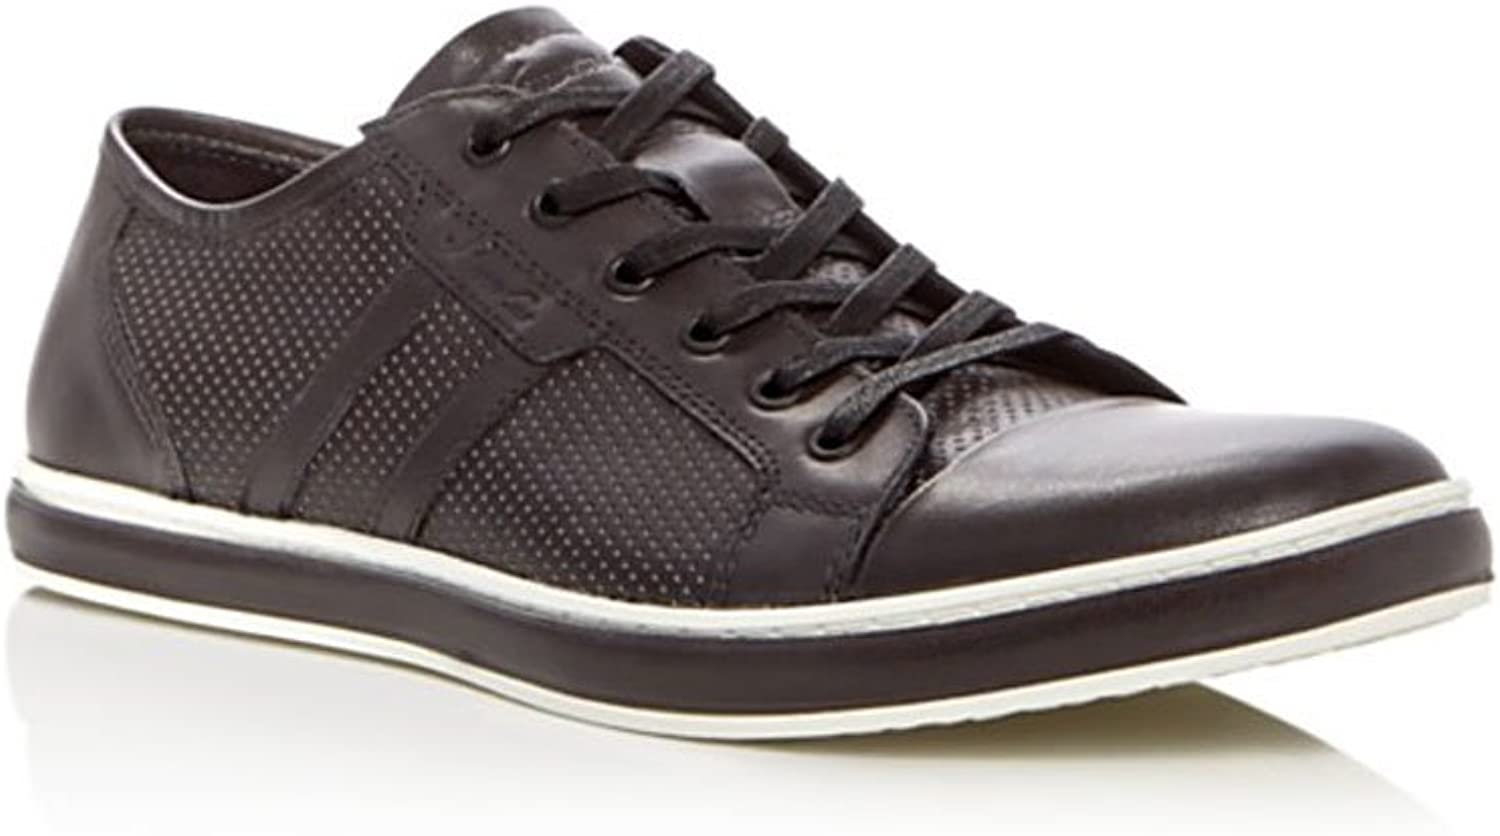 Kenneth Cole New York Men's Brand Wagon Fashion Sneaker